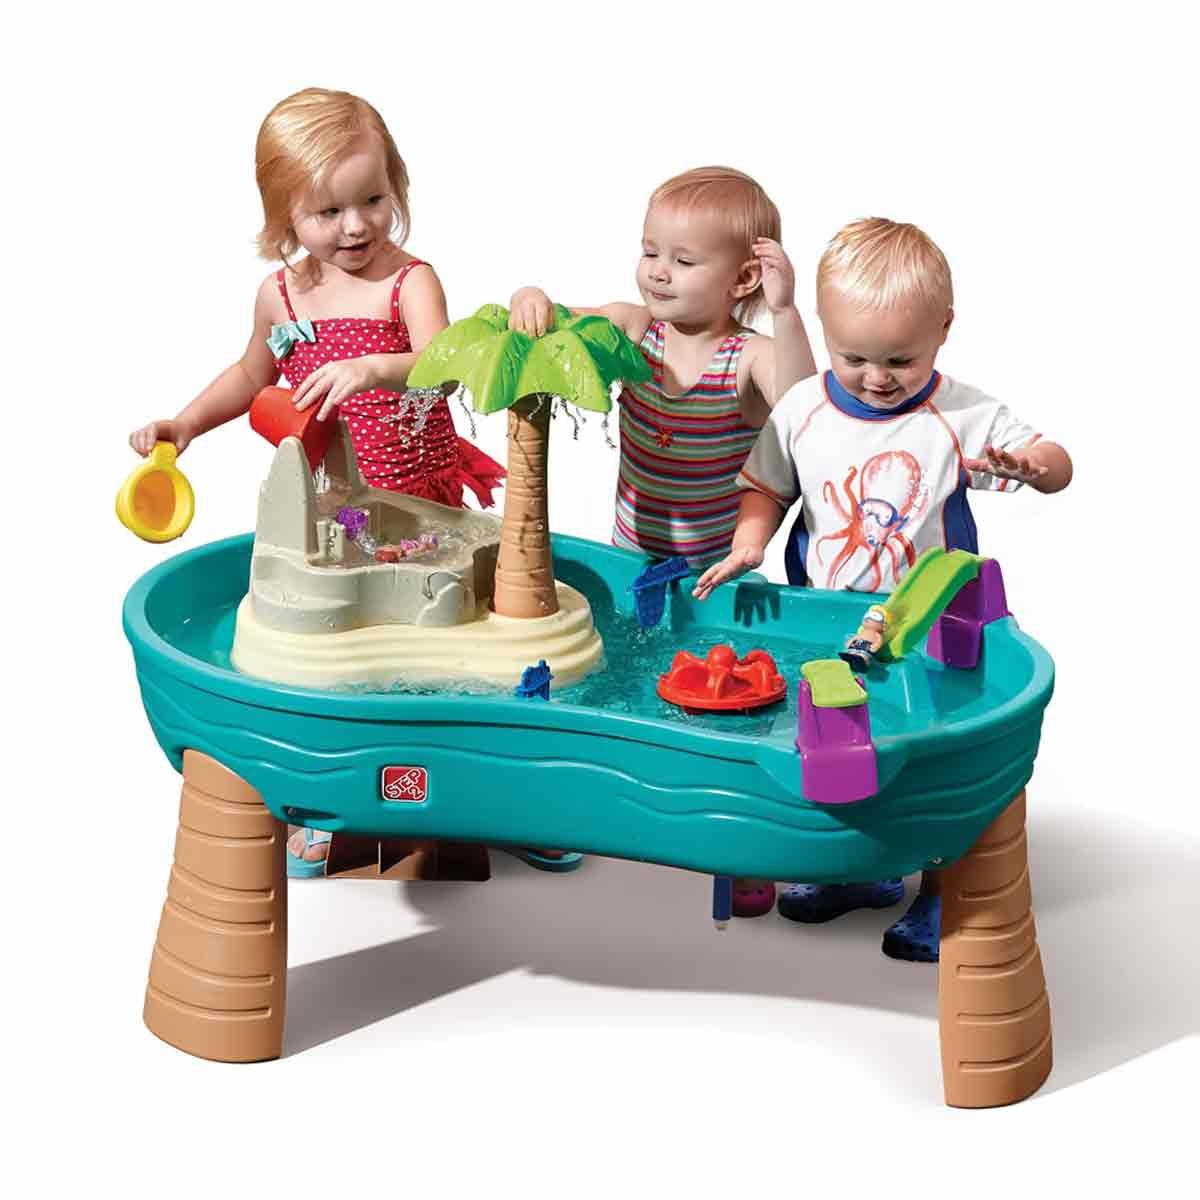 Best Outdoor Kids Toys for 2020: Expert Reviews - Mommyhood101